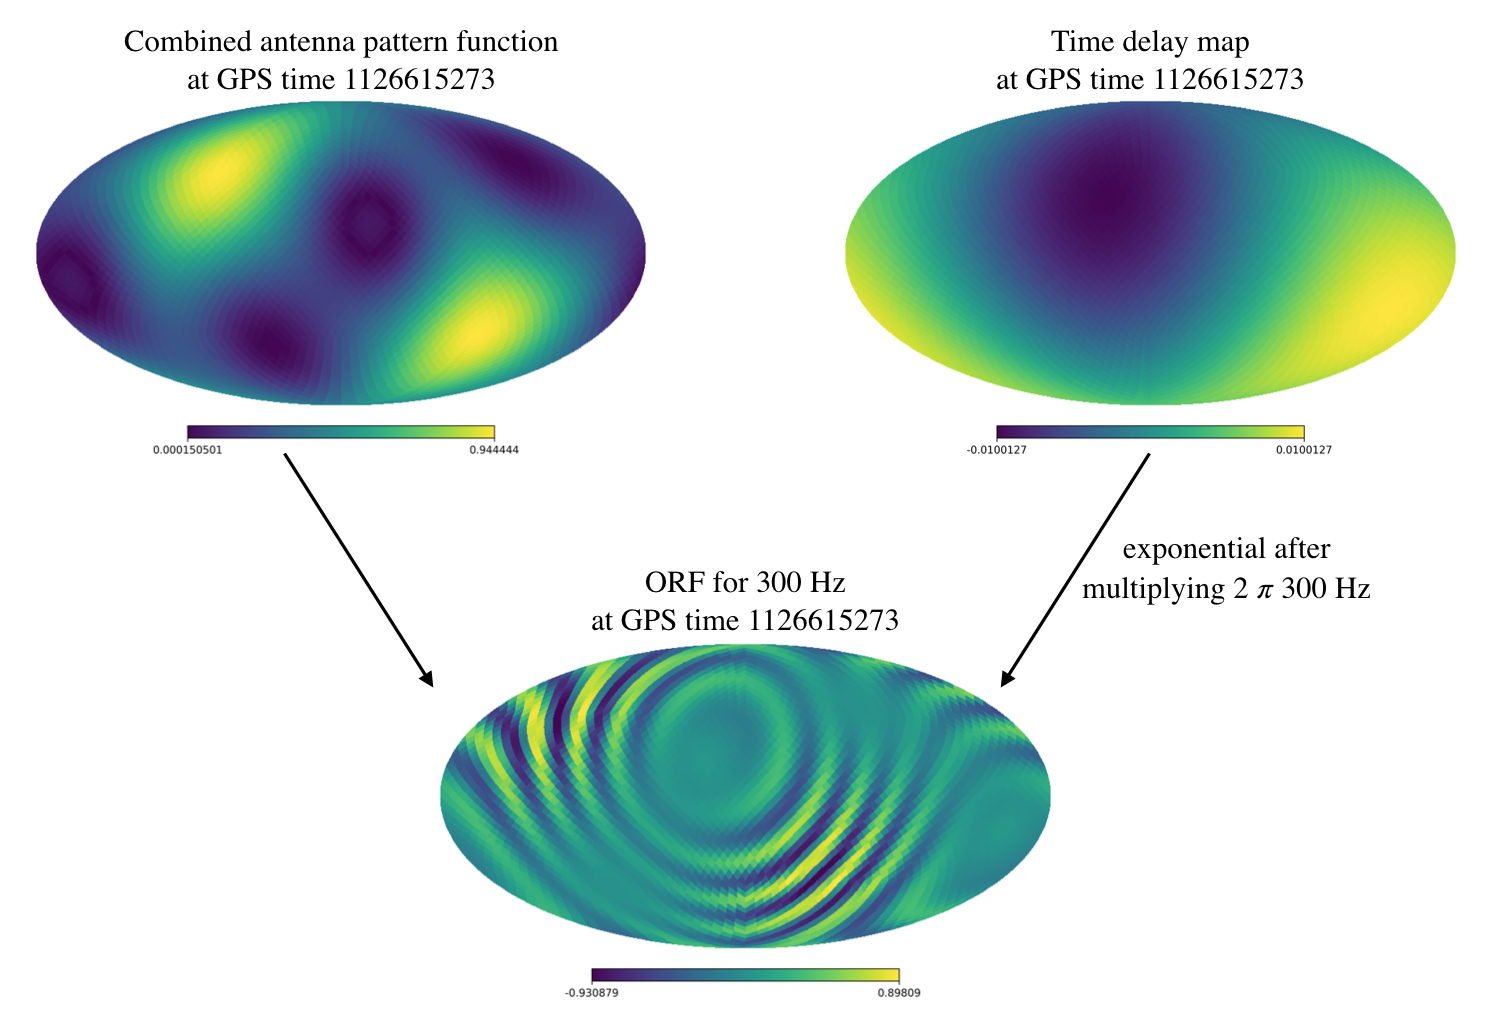 The top left map is essentially the sensitivity map for a baseline for a particular time. The top right map is the time delay map for the same time. Multiplying the top right map with a frequency dependent term (